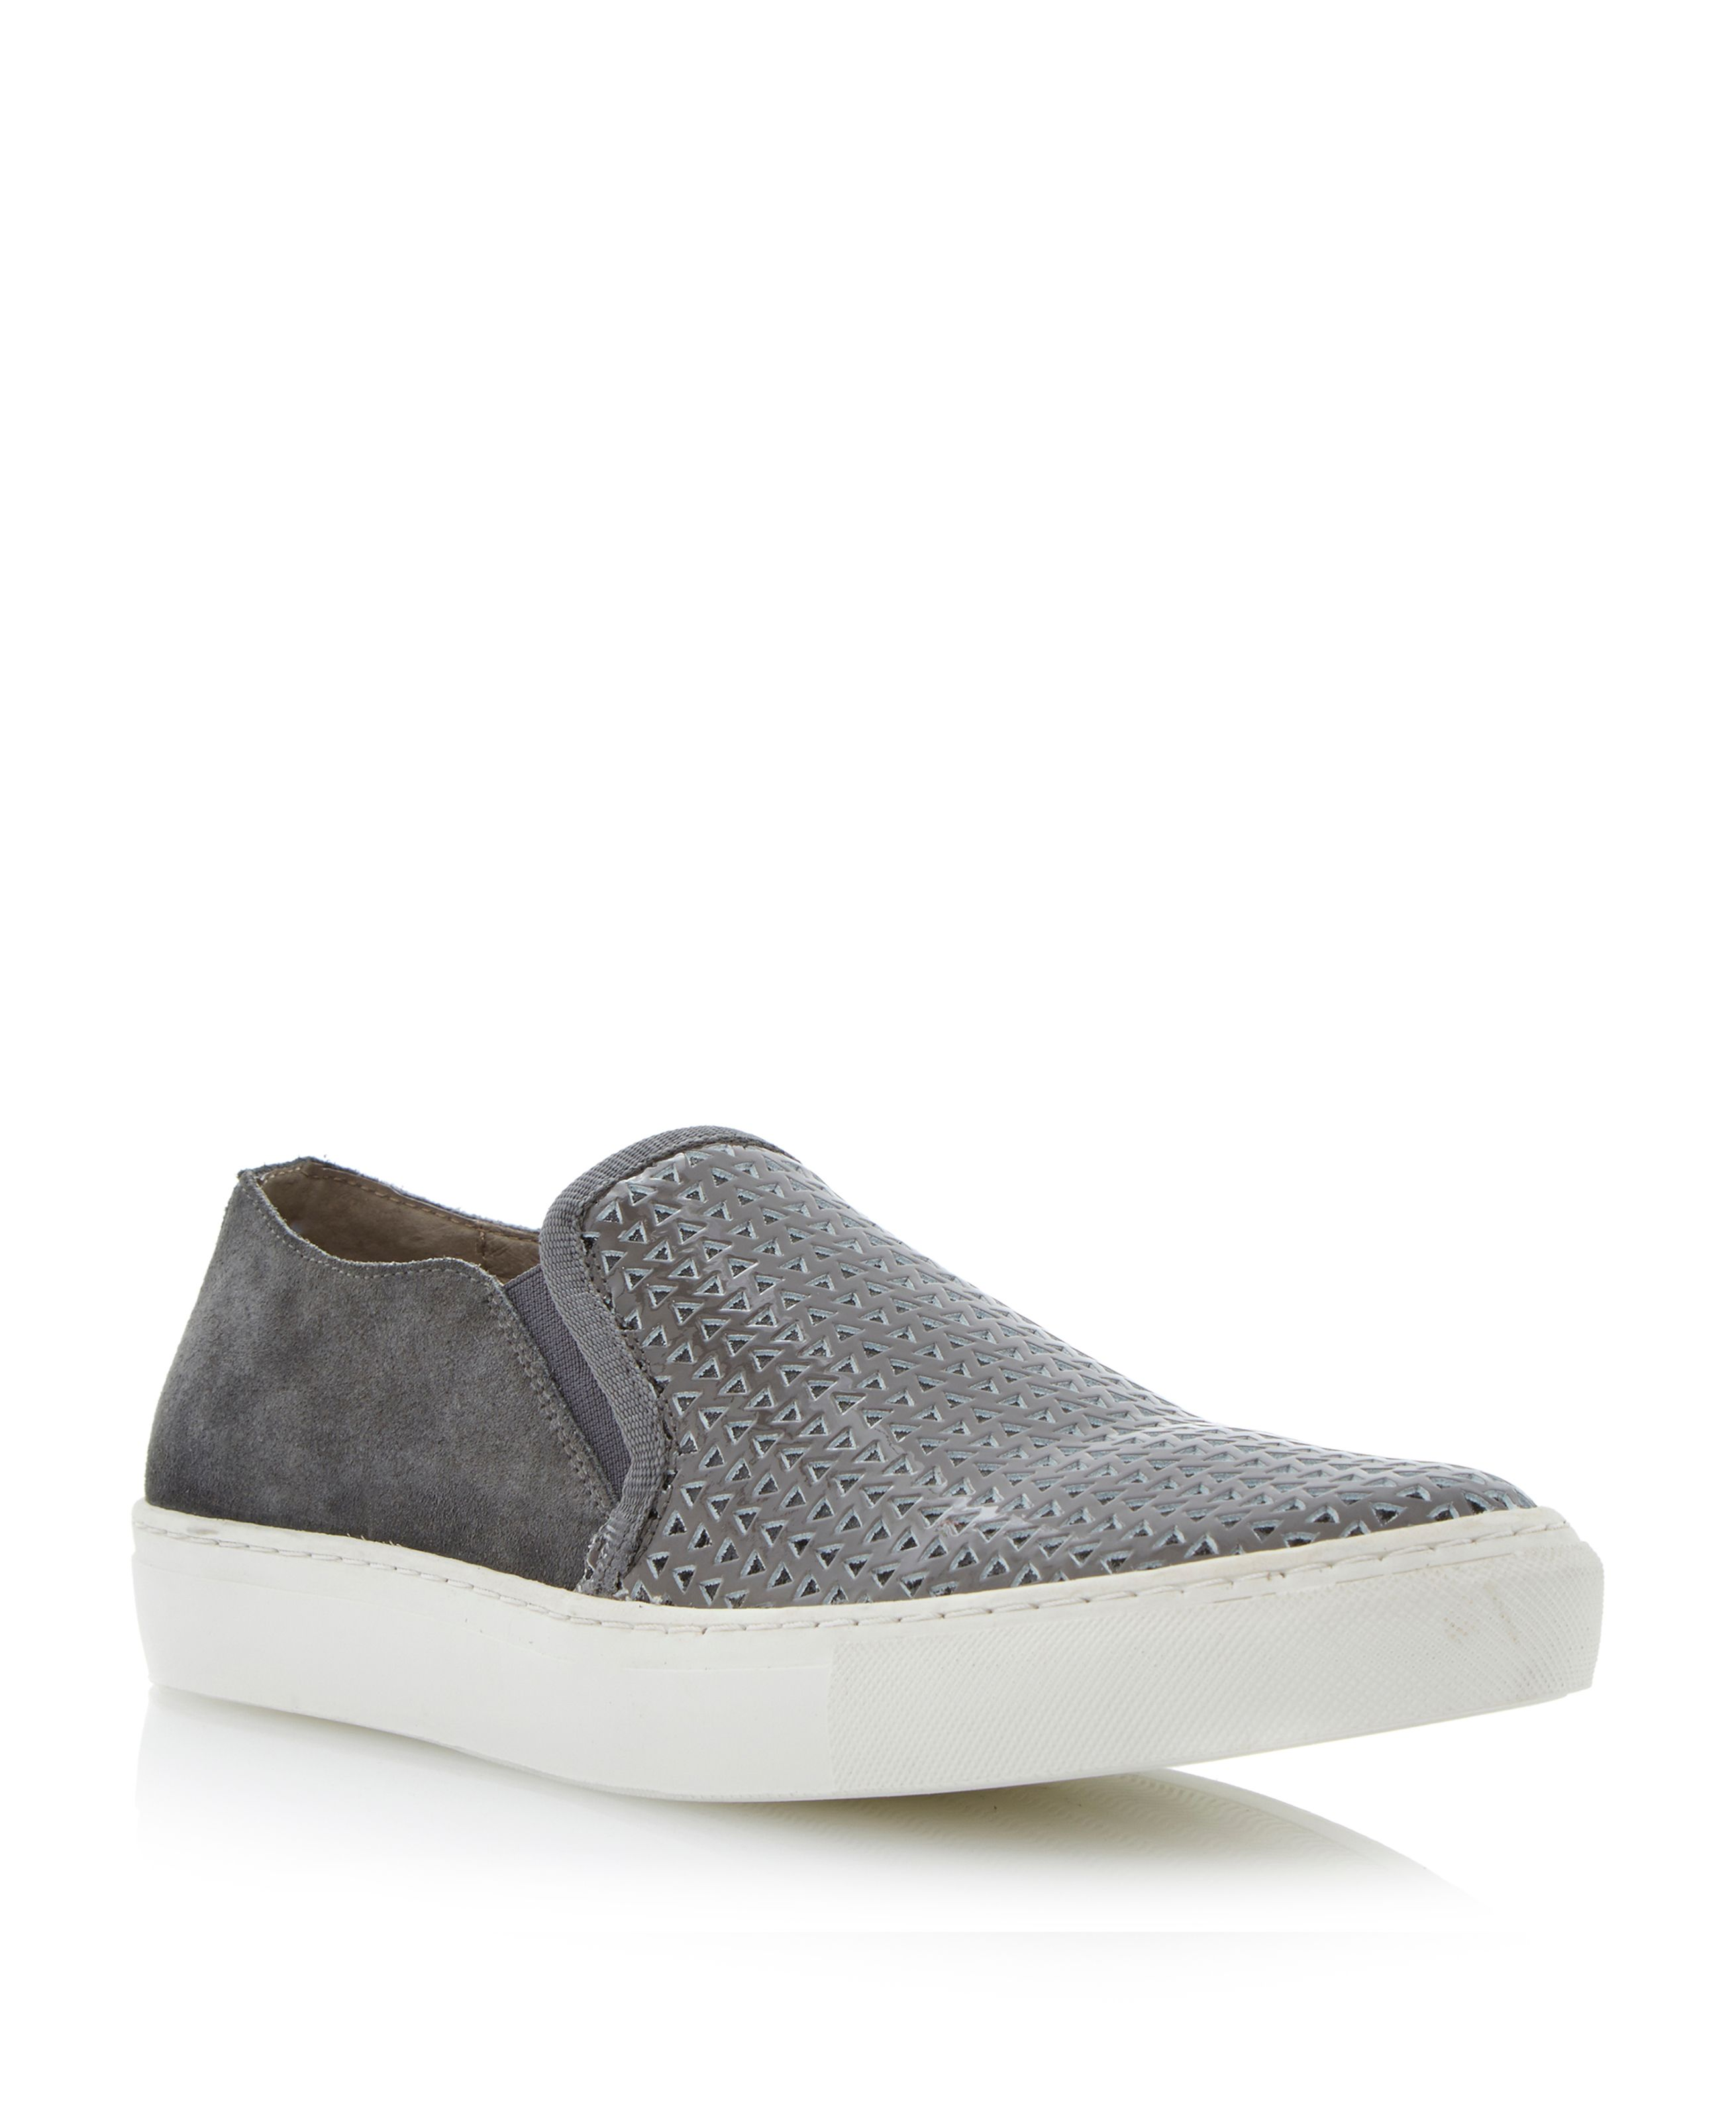 Garston elasticated cs perforated shoes